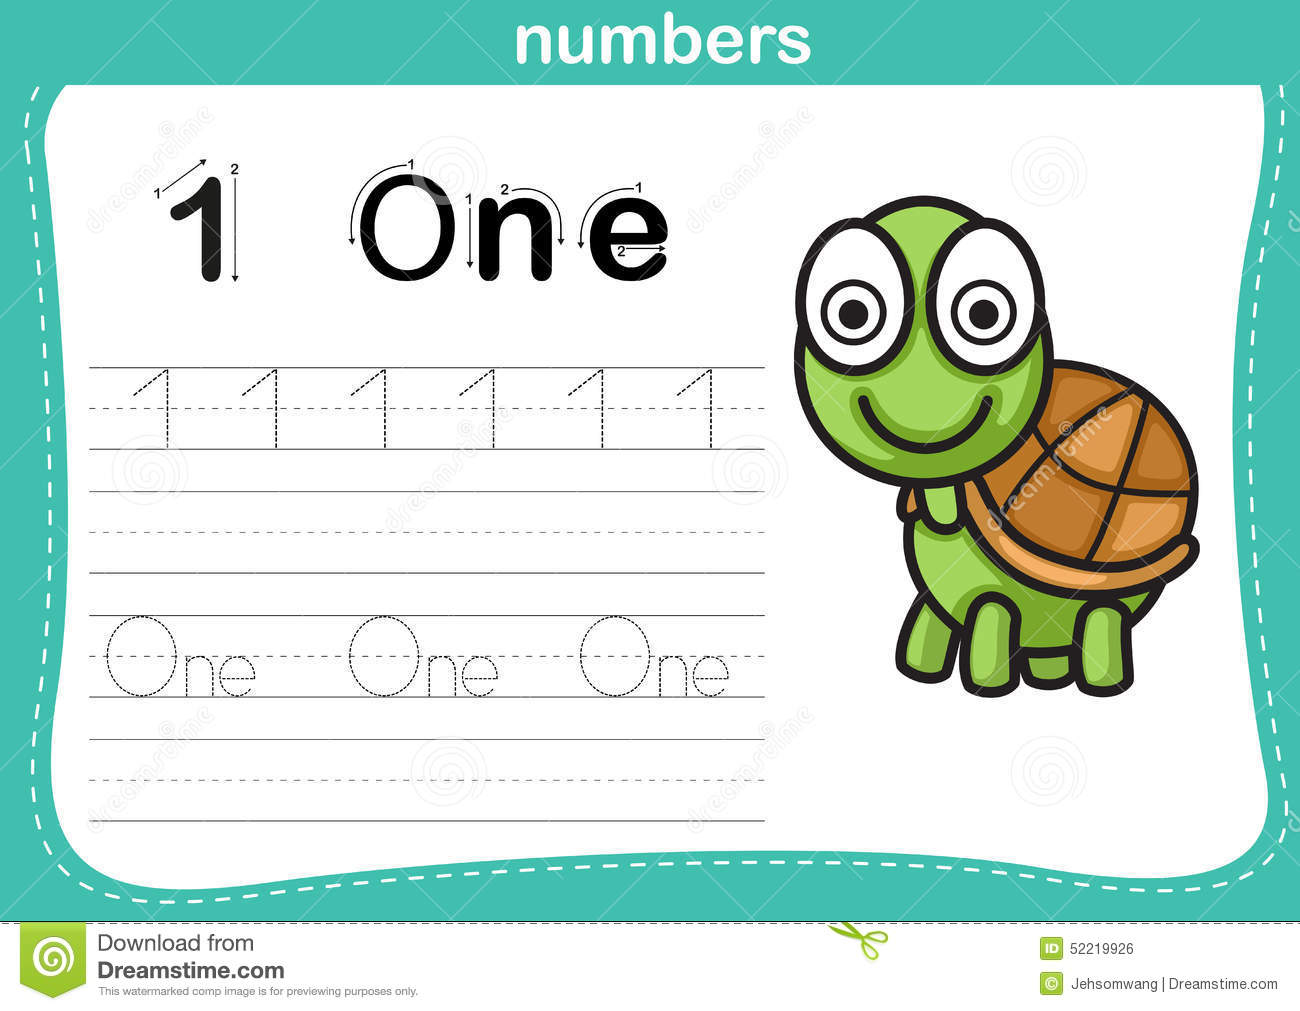 Numbers Vector Sea Life Vector Illustration